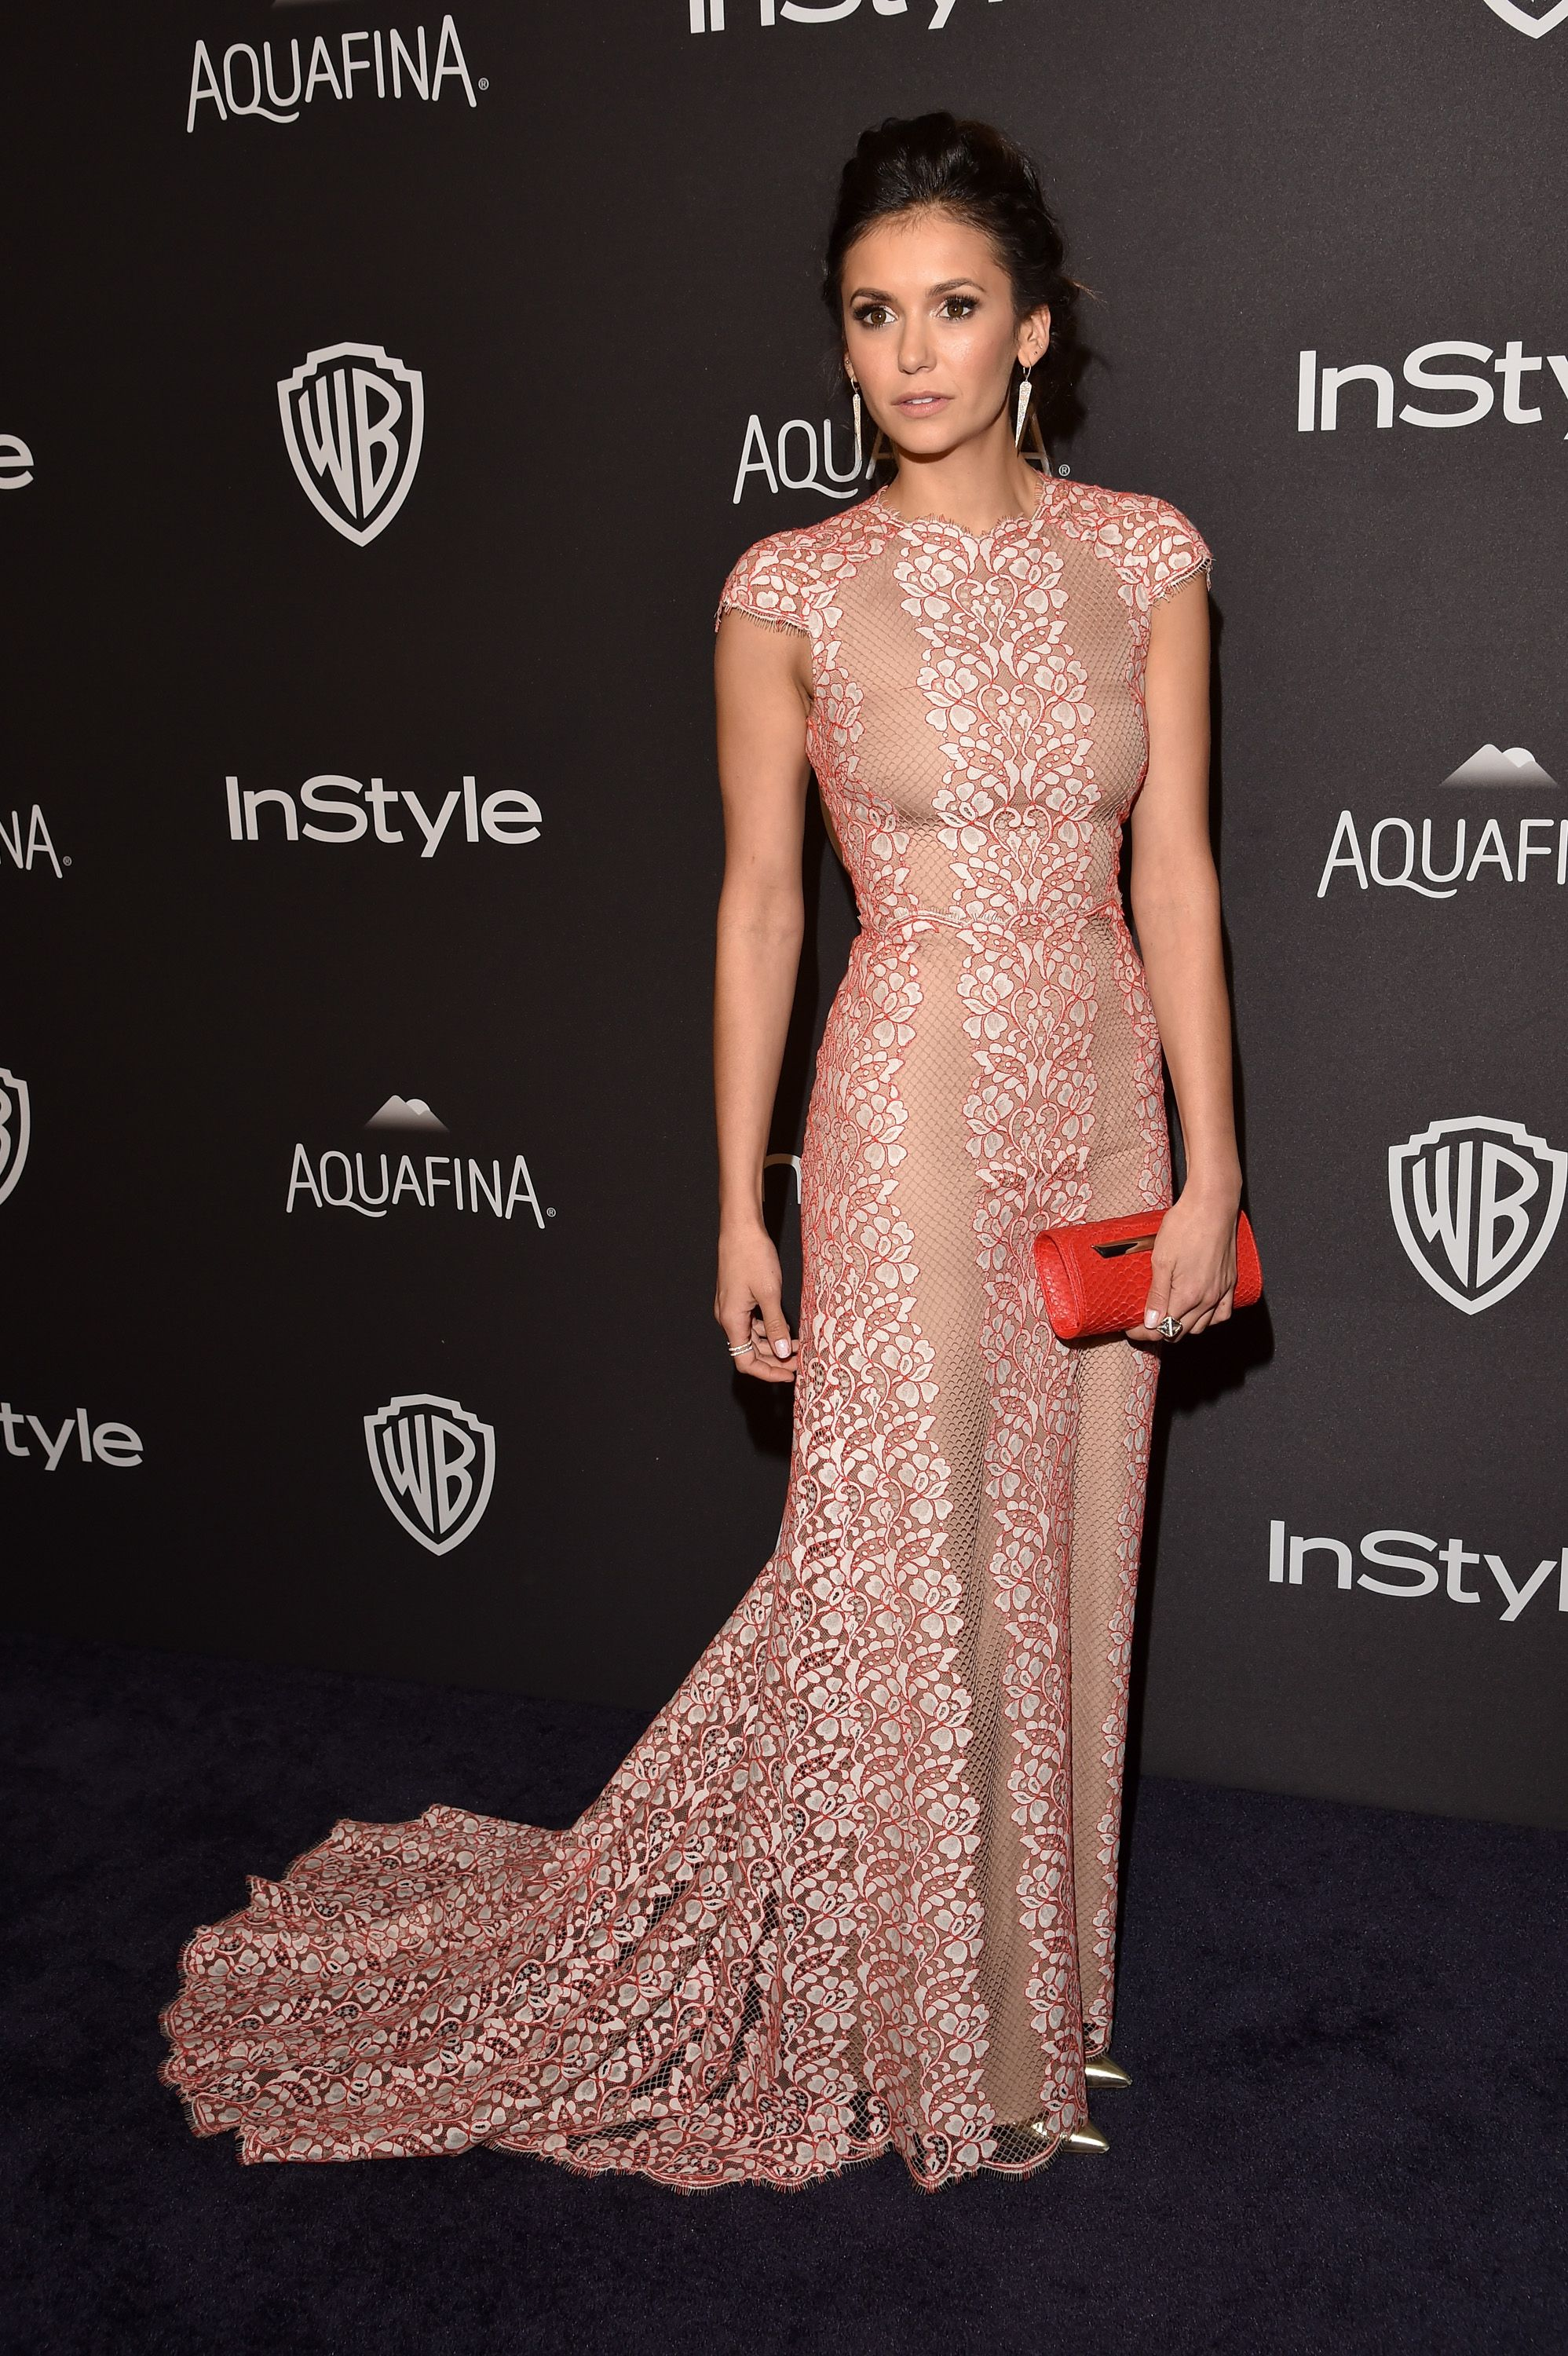 Nina Dobrev \ The Best-Dressed Stars at the Golden Globe Awards 2016 After-Parties | StyleCaster